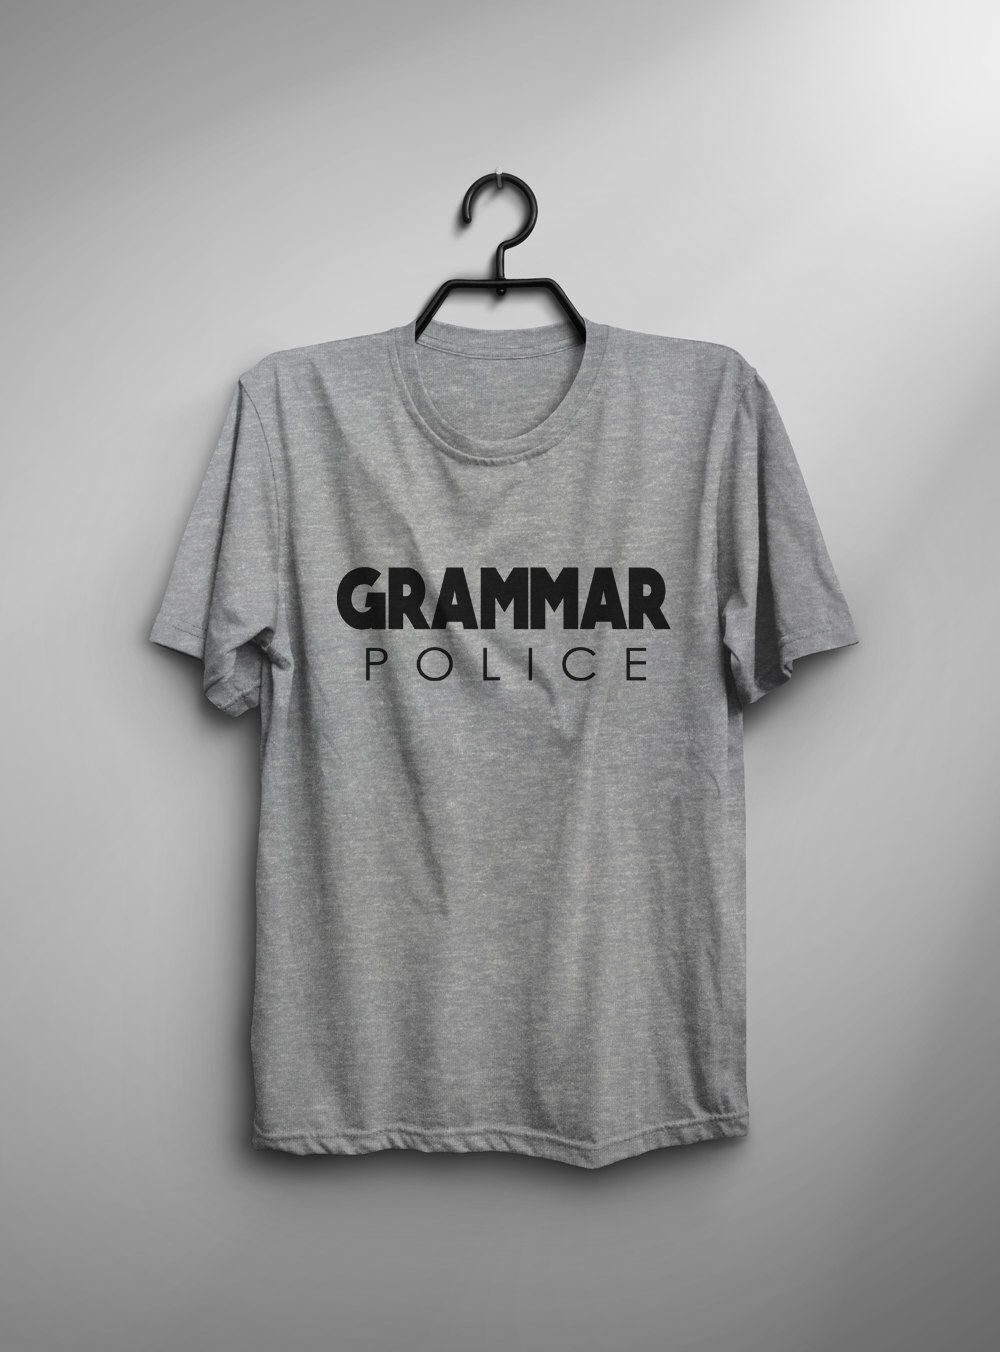 Grammar police t-shirt english teacher shirt gift womens graphic tee for teens college high school graduation mens funny tshirt #coloredeyecontacts